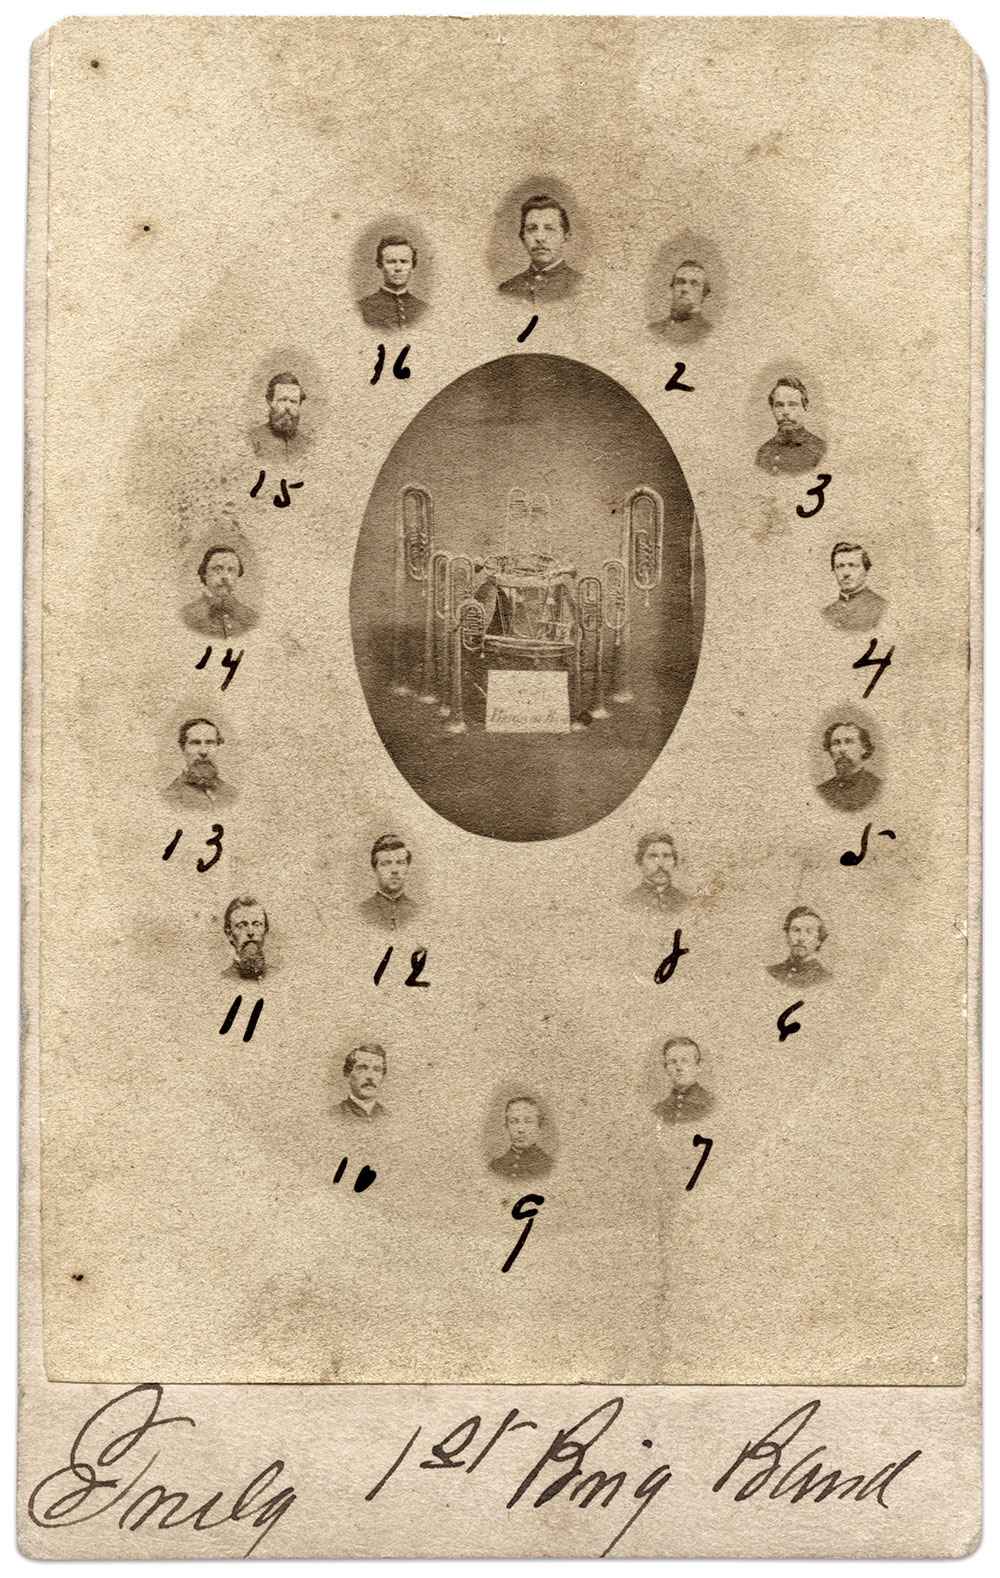 THE IRON BRIGADE BAND: The majority of musicians hailed from the 2nd Wisconsin Infantry. They are (1) Band leader Frederick Pischel, (2) James Wooler, (3) Nathaniel Jacobs, (4) Gundrum, (5) Joseph H. Sale, (6) Alfred E. Haven, (7) Anson Linscott, (8) Joseph Temby, (9) James Wilkinson, (10) James H. Neaville, (11) Alva R. Bridgman, (12) Edwin Andrews, (13) Isaac Riggs, (14) Jacob W. Gilbert, (15) George W. Peck and (16) Oscar H. Comfort. Carte de visite by Tyson Brothers of Gettysburg, Pa. Marc and Beth Storch Collection.